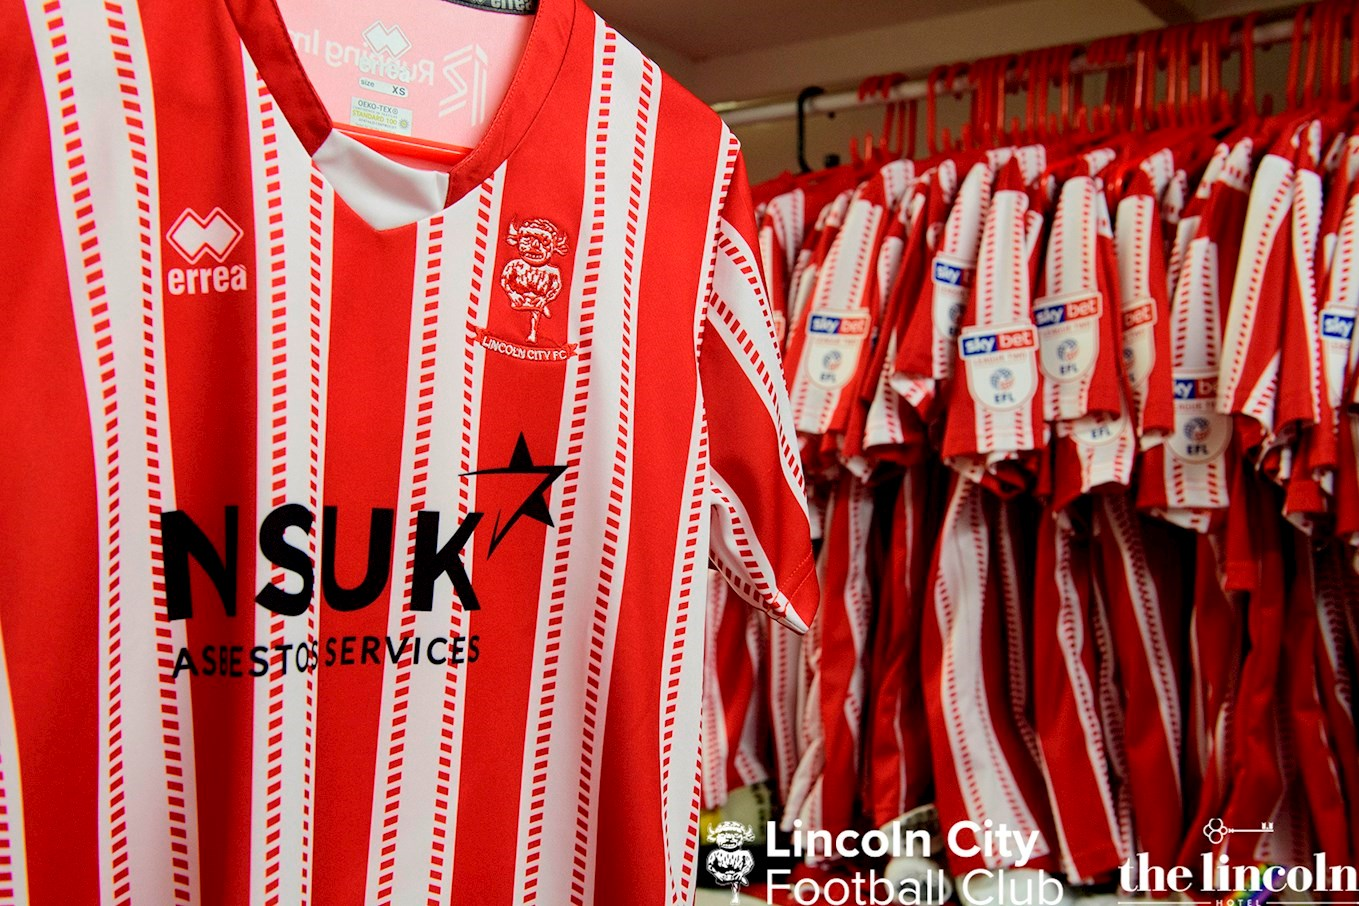 ce1812016b8c Club Shop - 20% off Online and In Store - News - Lincoln City